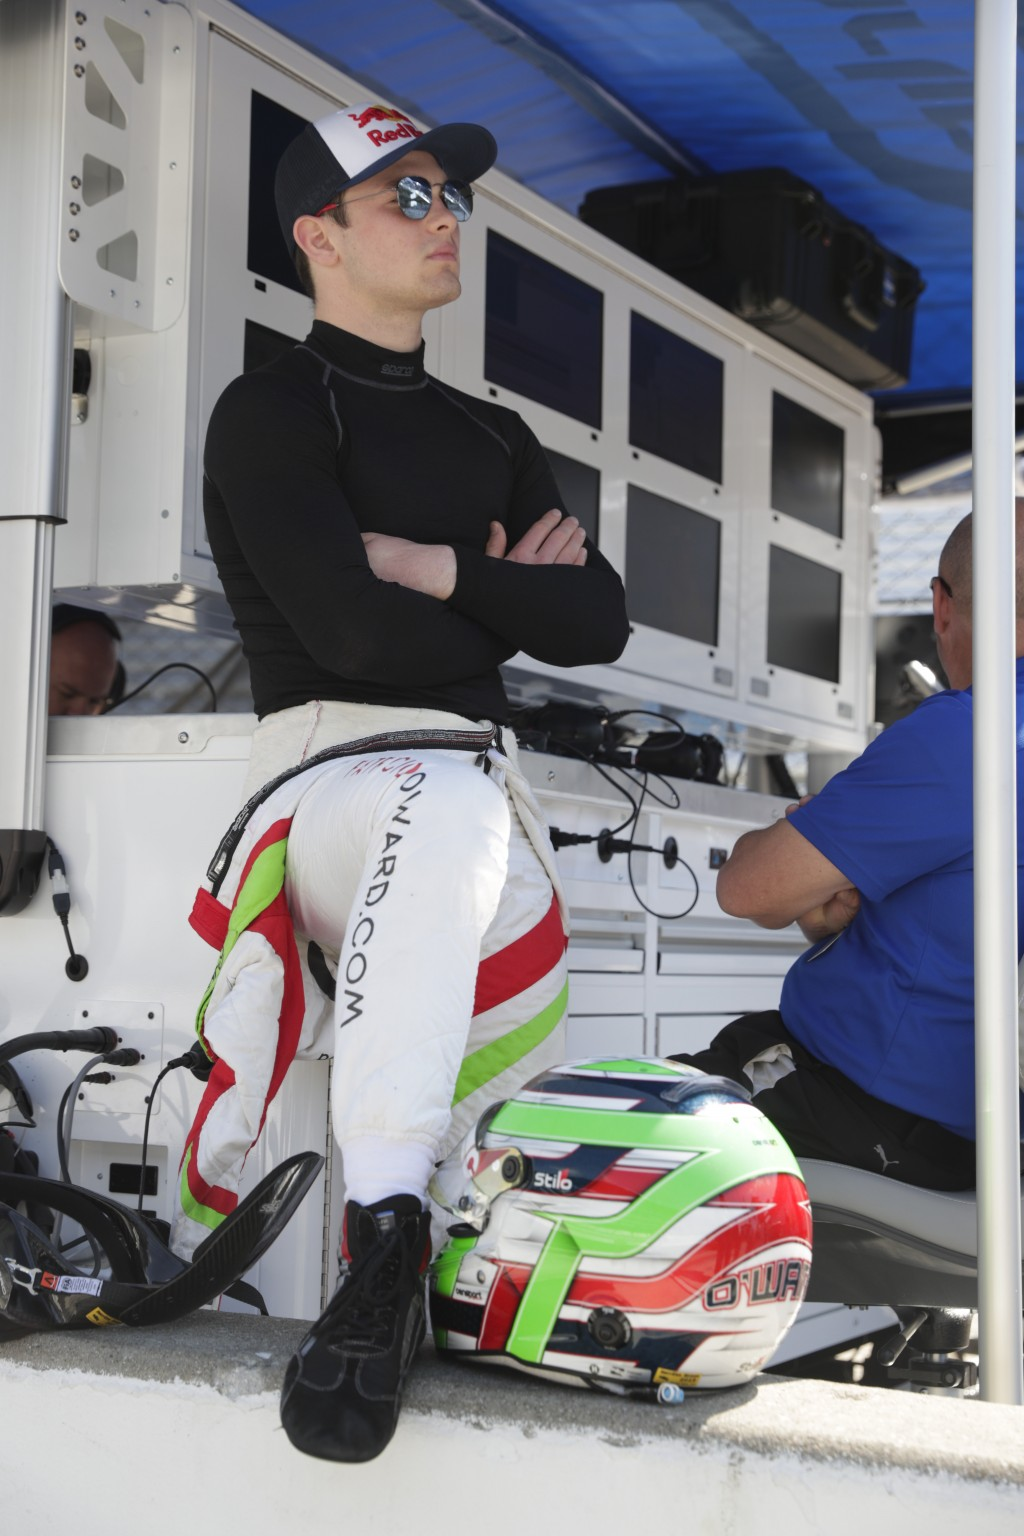 Patricio O'Ward, of Mexico, waits for the start of practice for the Indianapolis 500 IndyCar auto race at Indianapolis Motor Speedway, Thursday, May 1